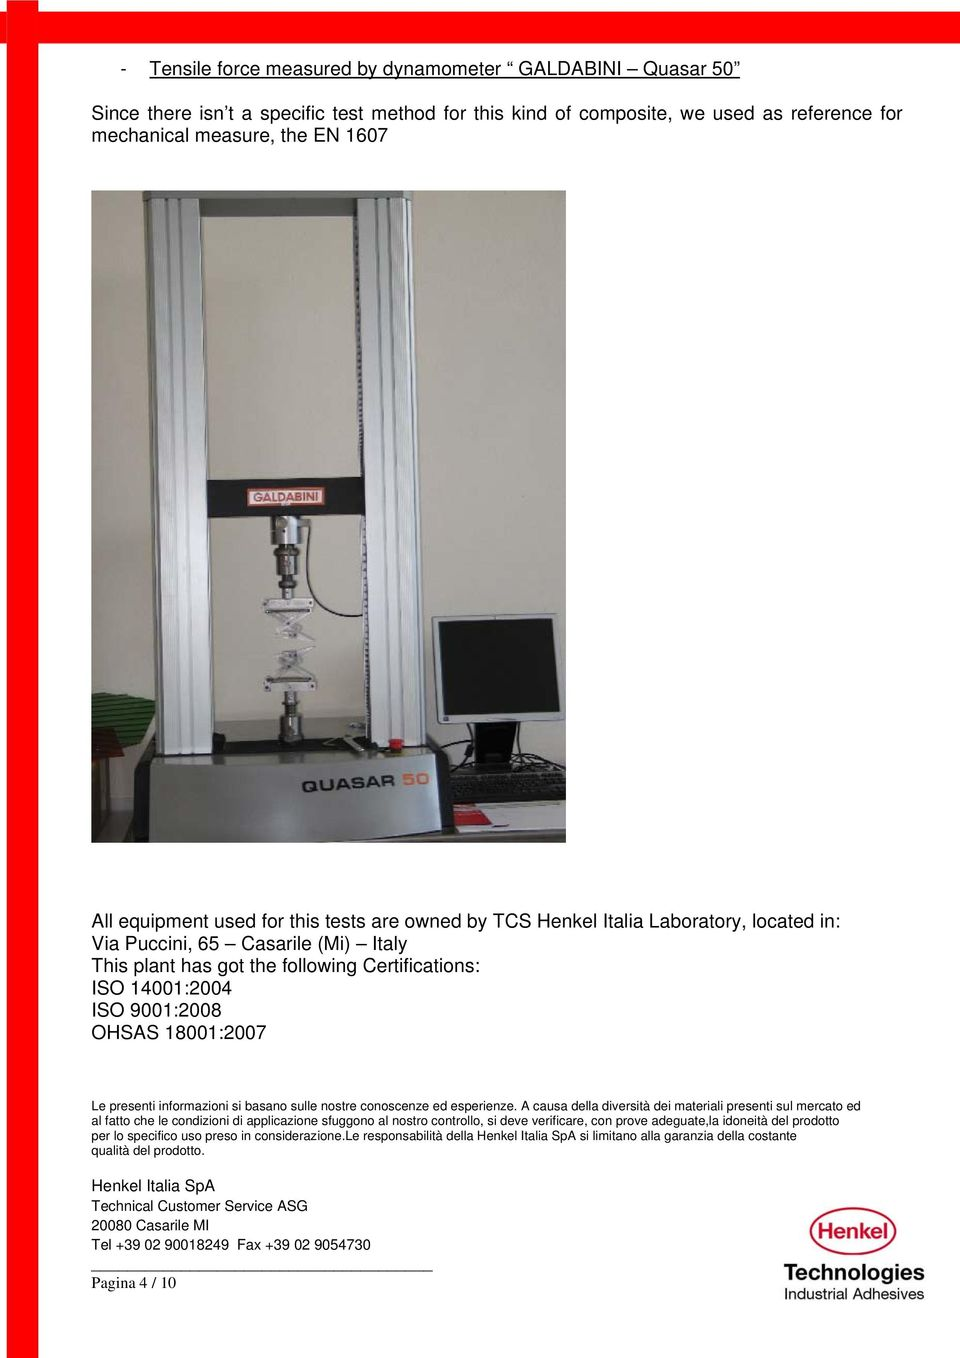 this tests are owned by TCS Henkel Italia Laboratory, located in: Via Puccini, 65 Casarile (Mi) Italy